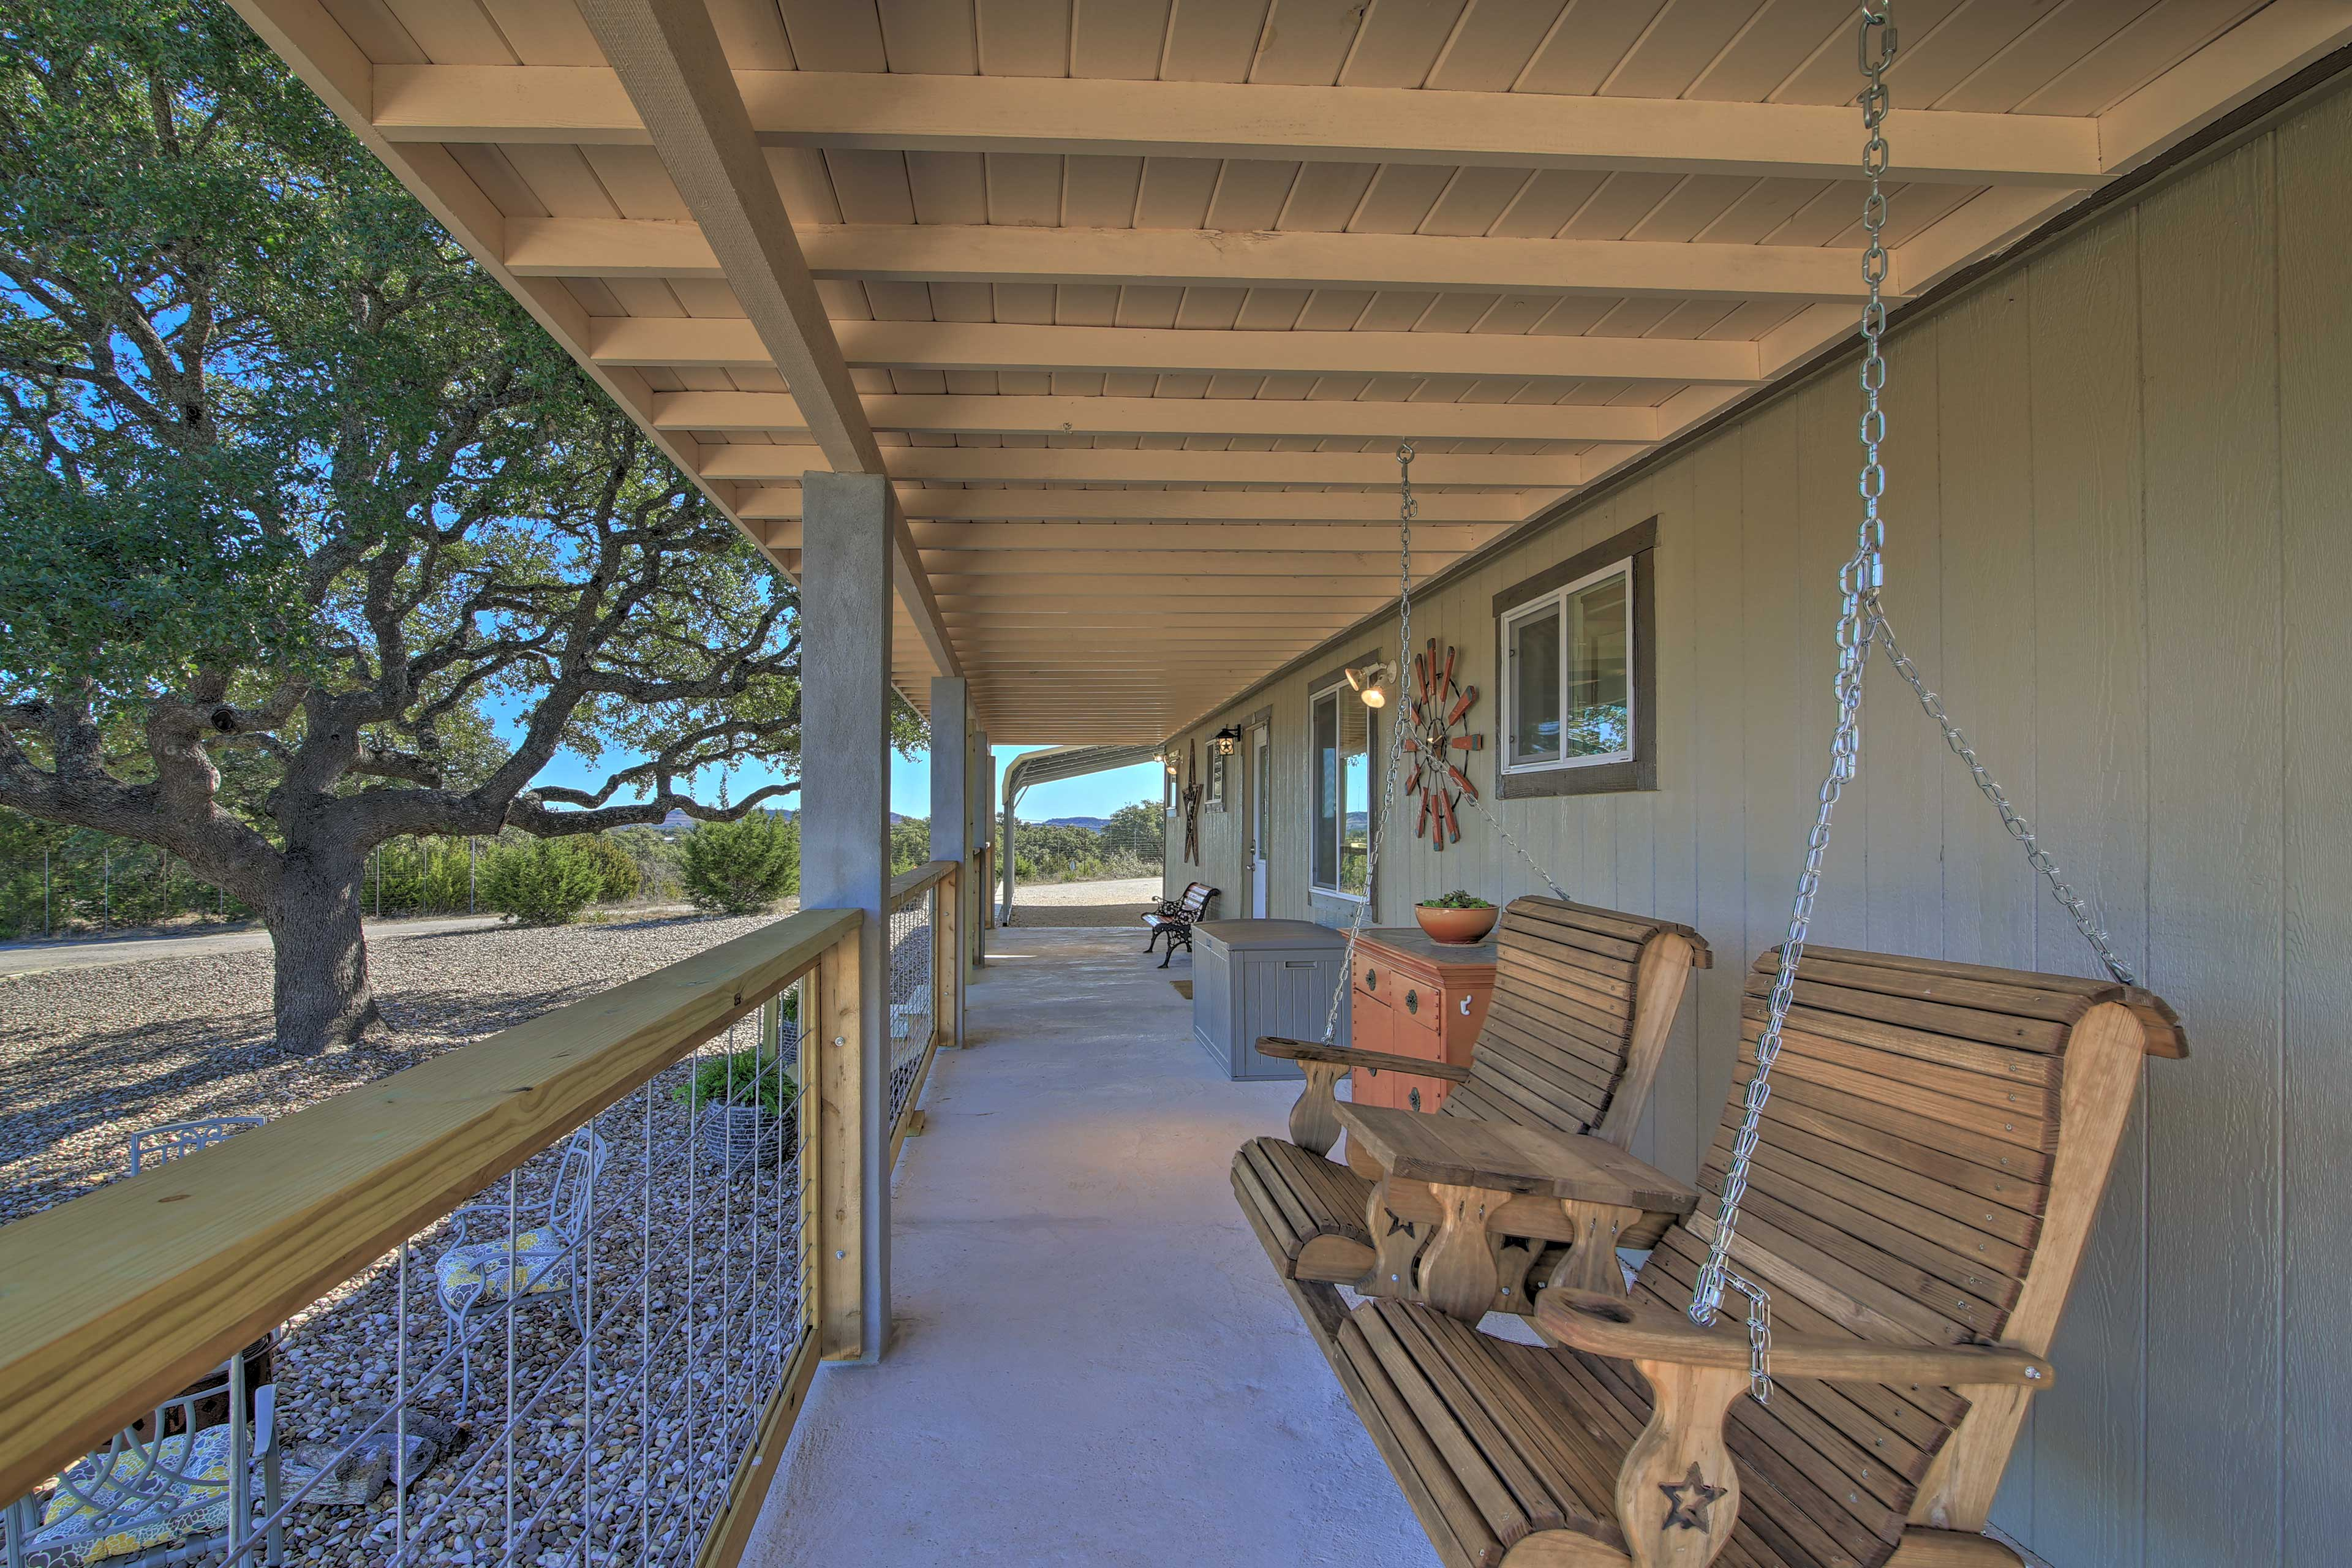 Sit on the covered front porch and tell stories on the porch swing.